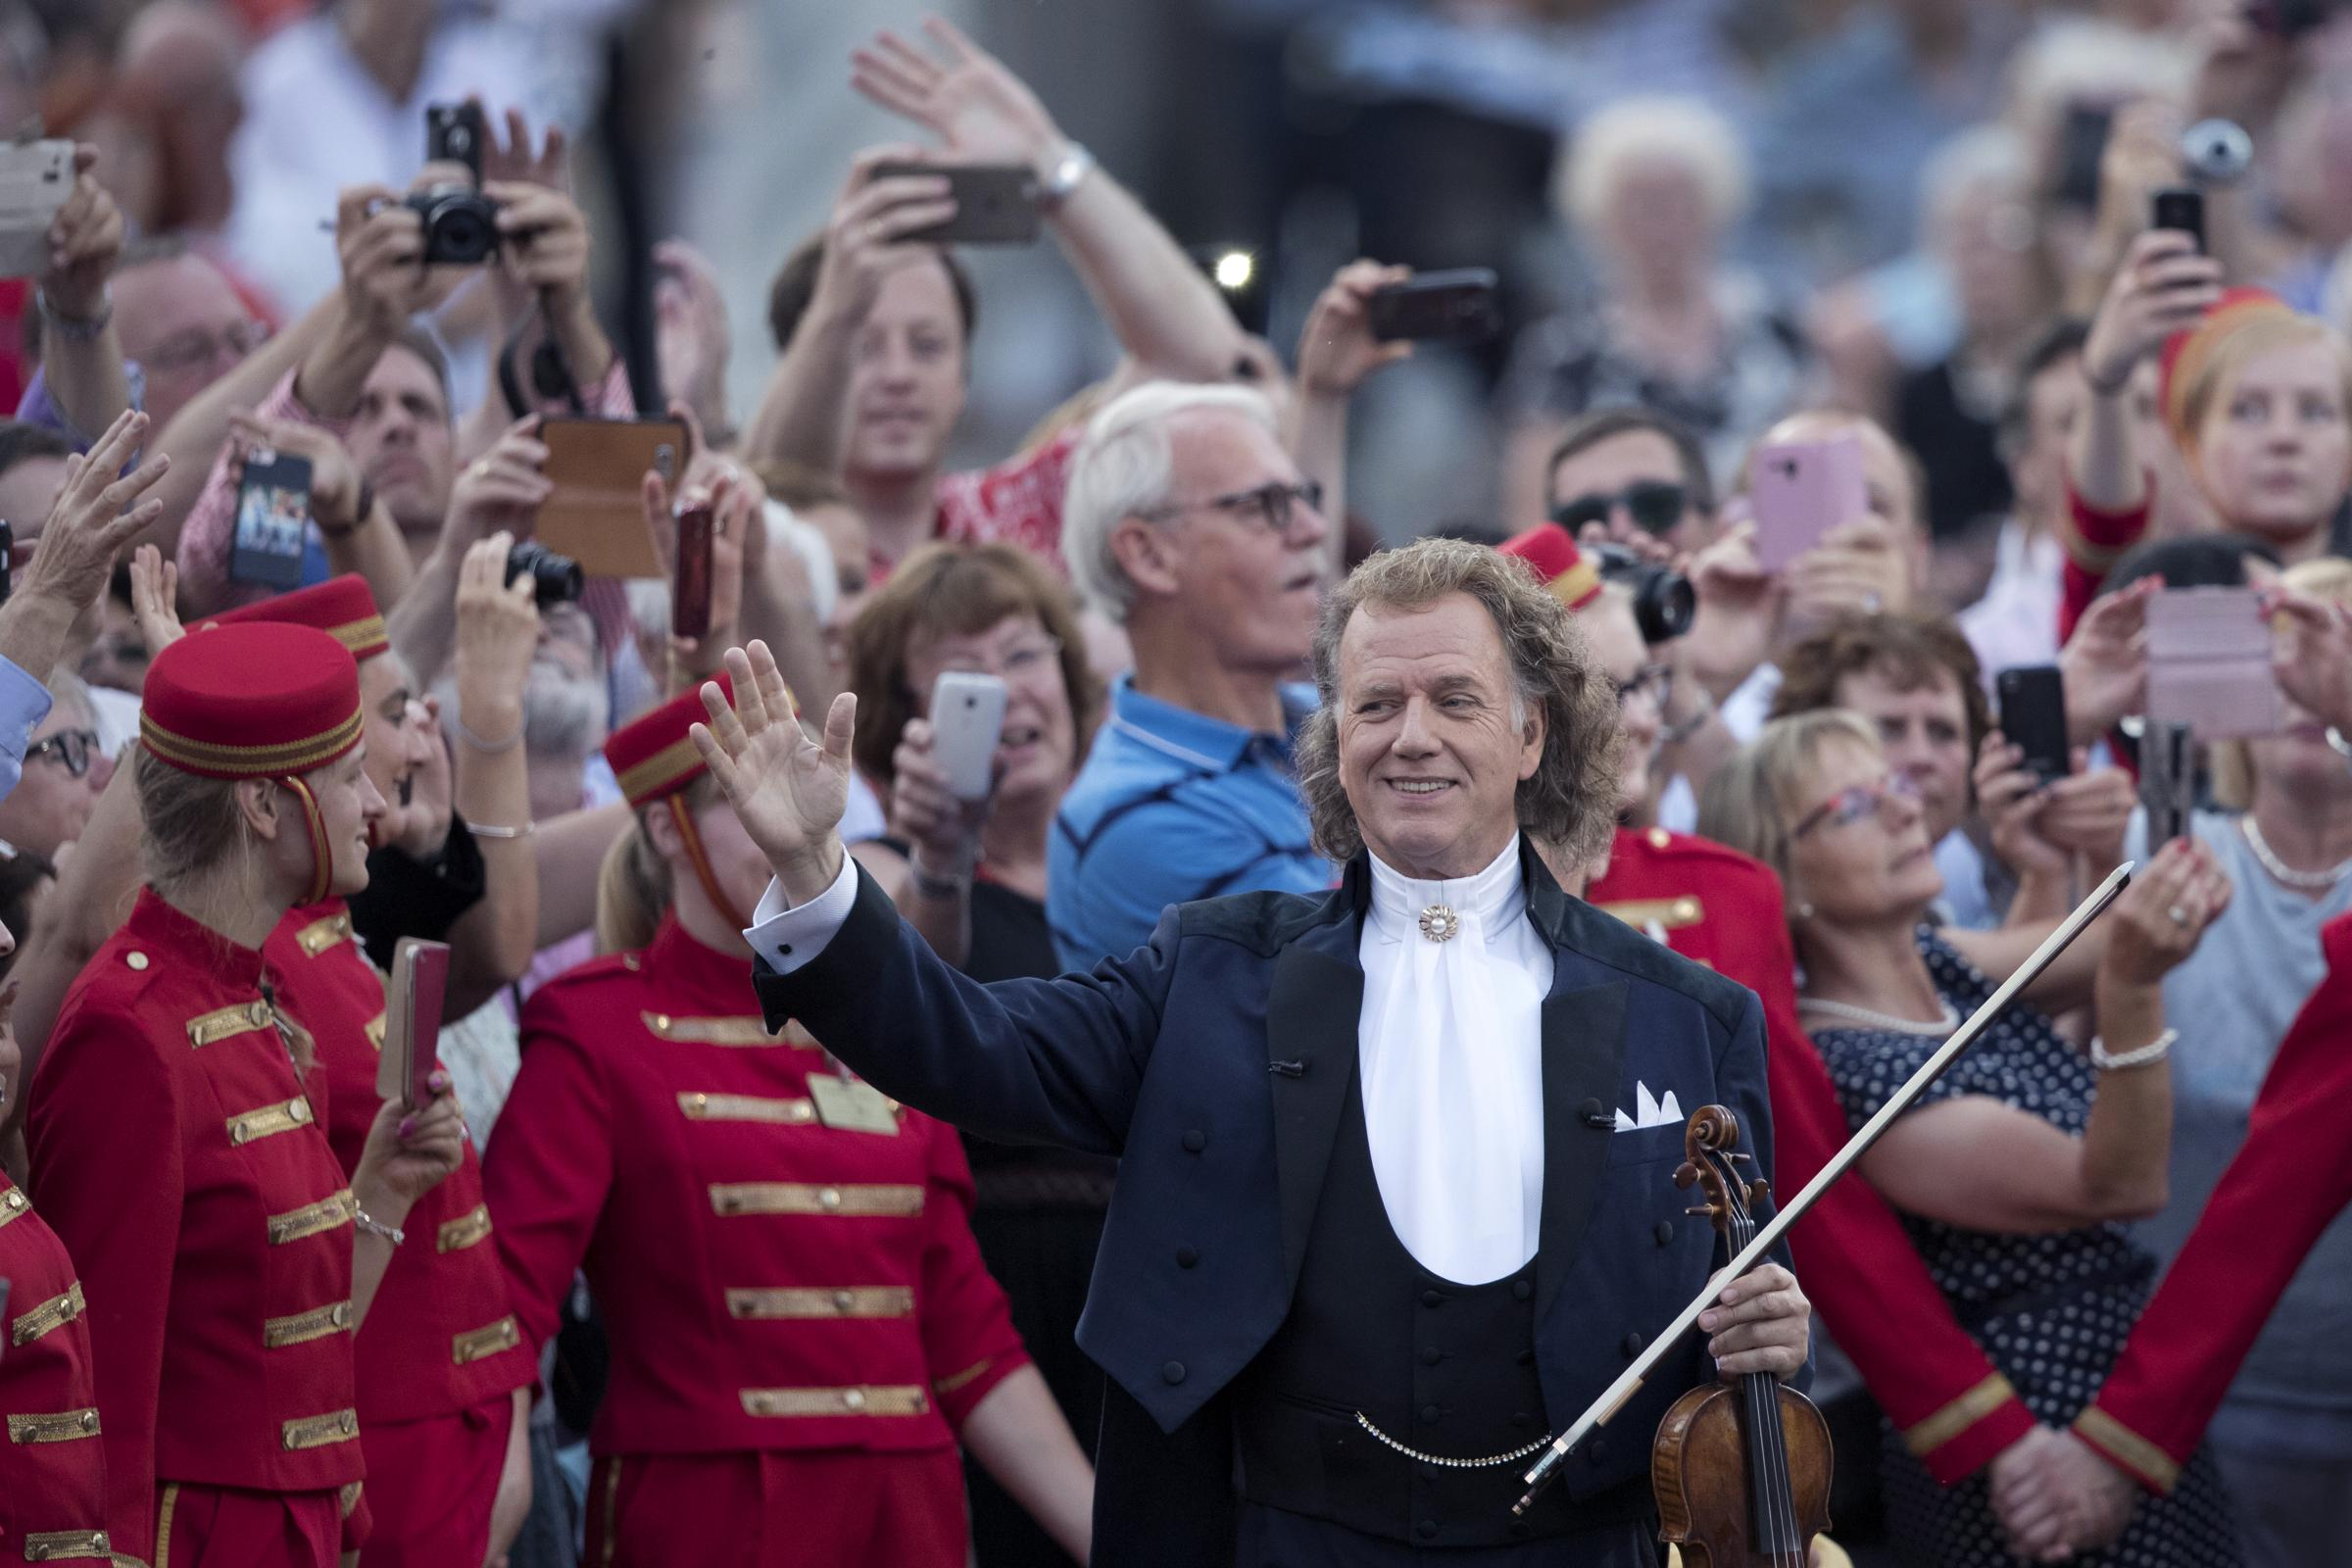 André Rieu show to be screened in Weymouth and Dorchester